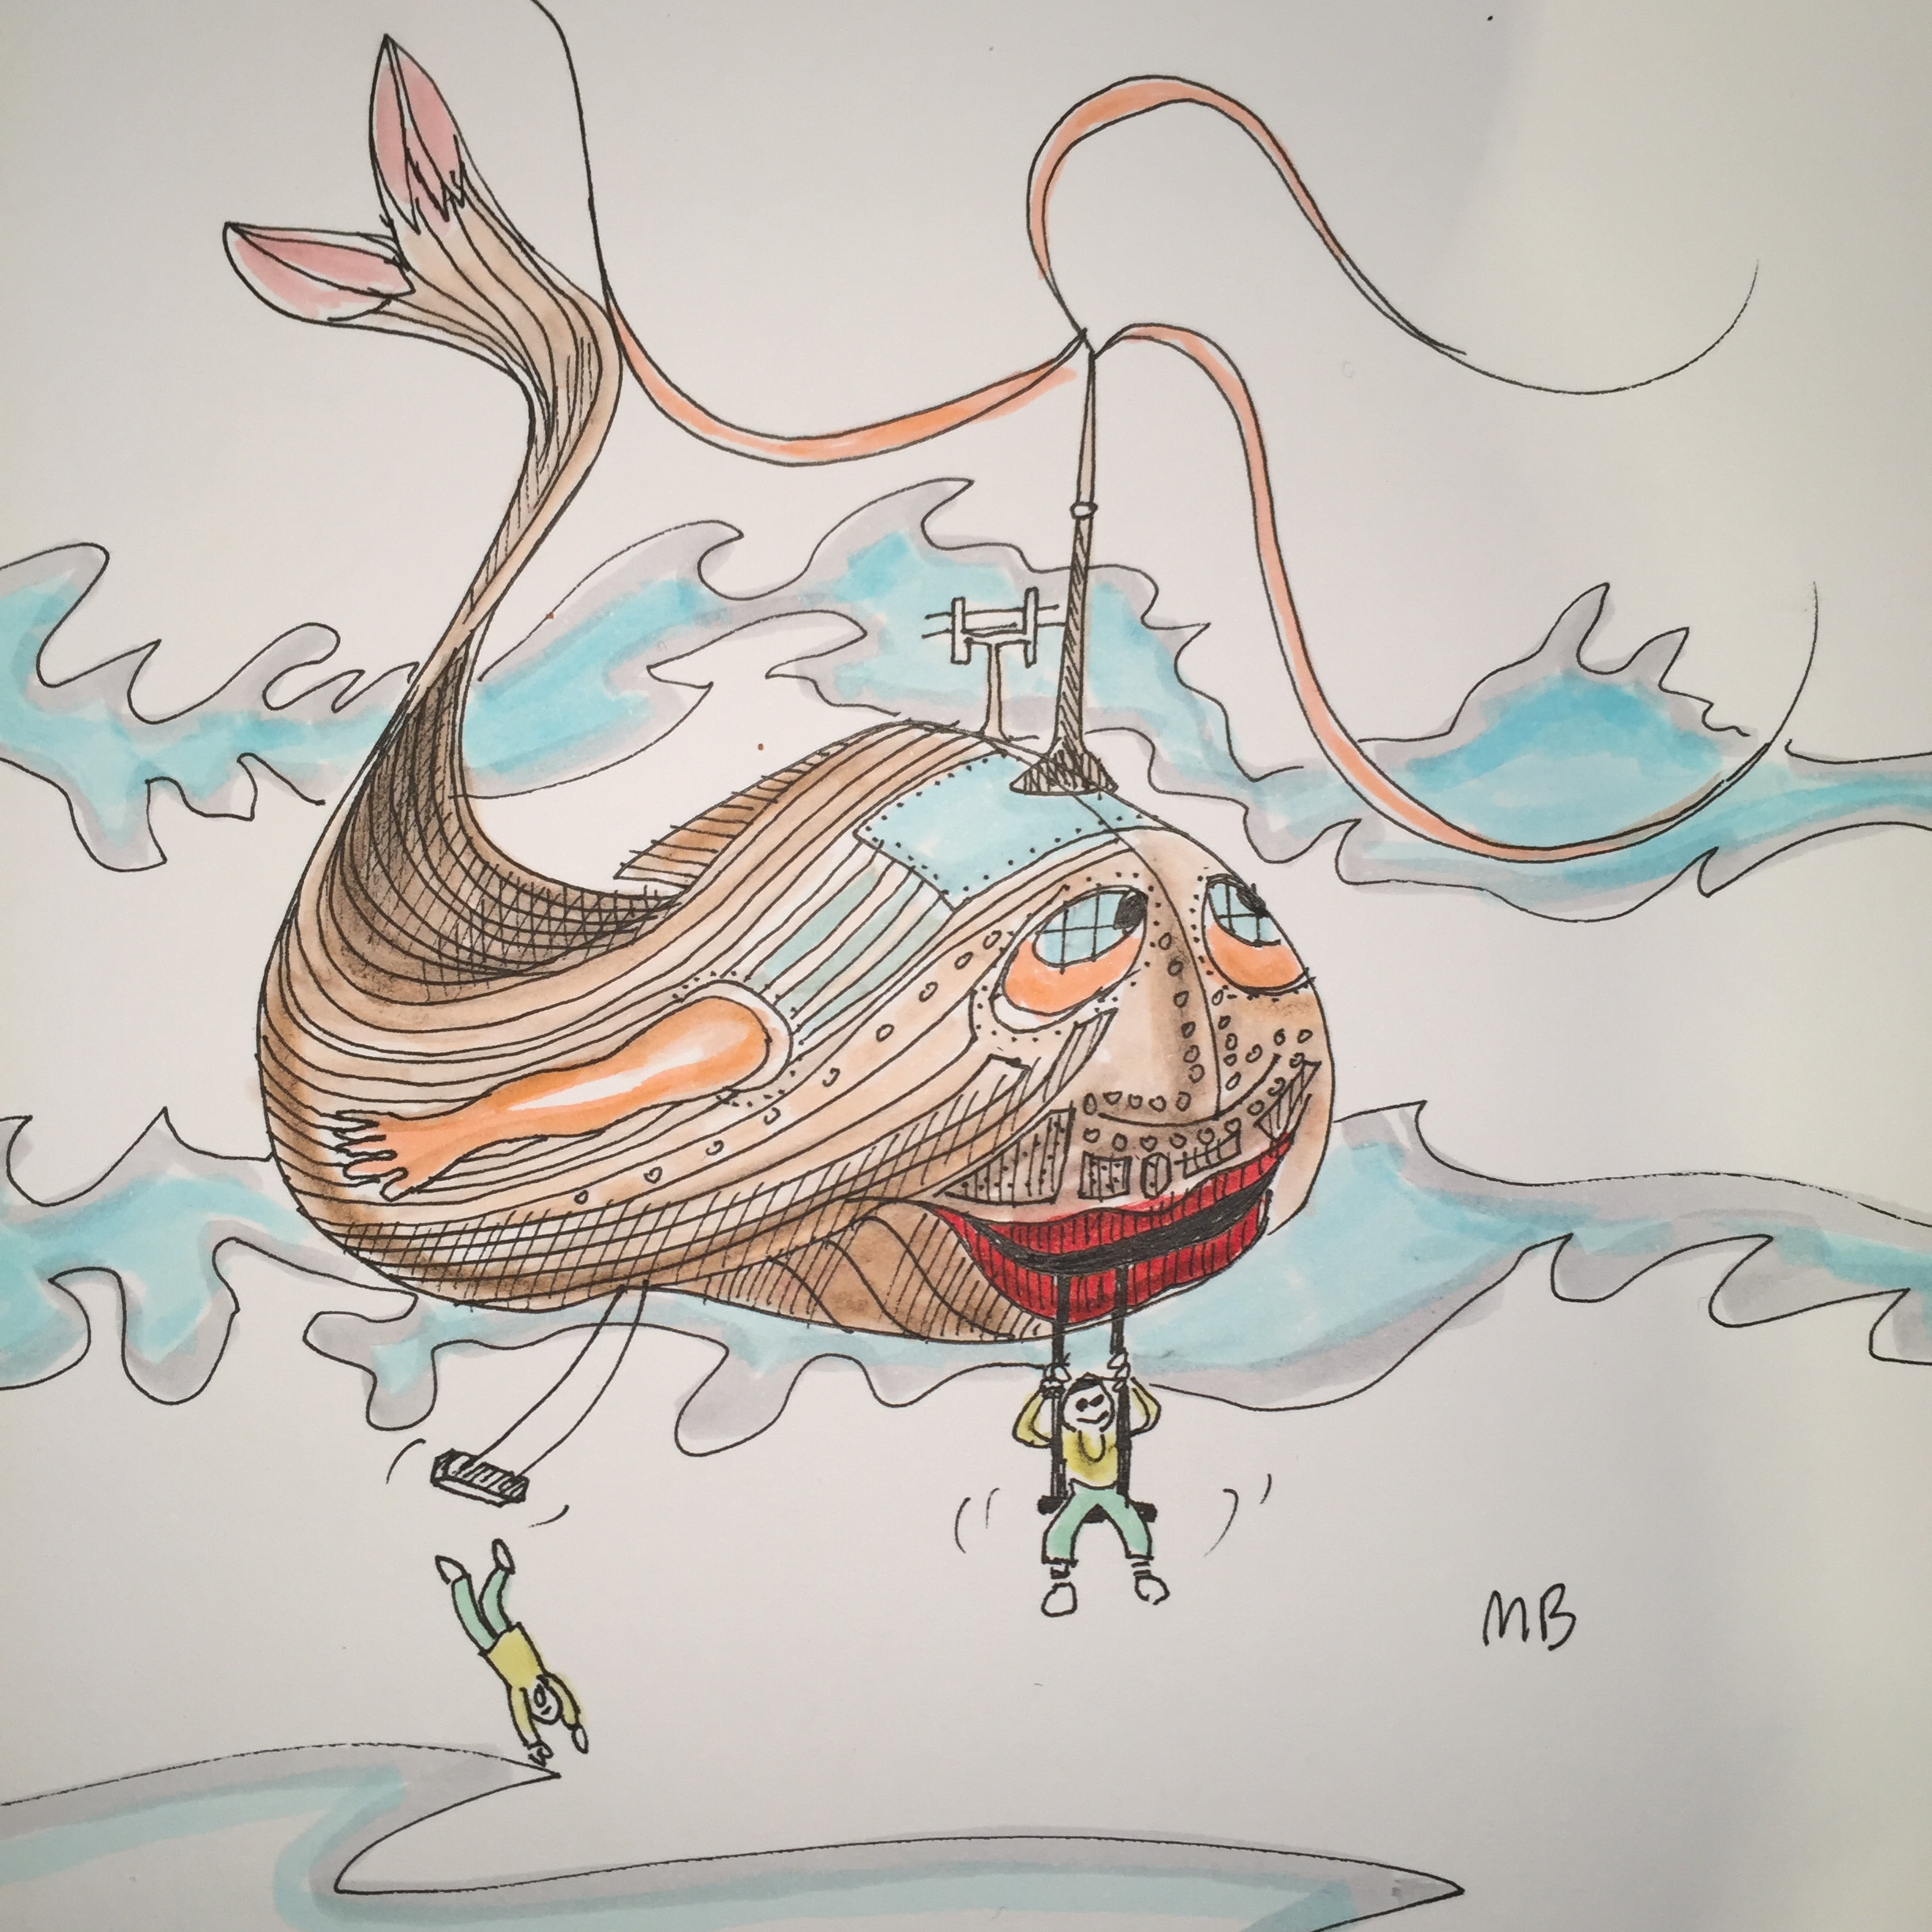 Flying boojum boat doodle with two blokes